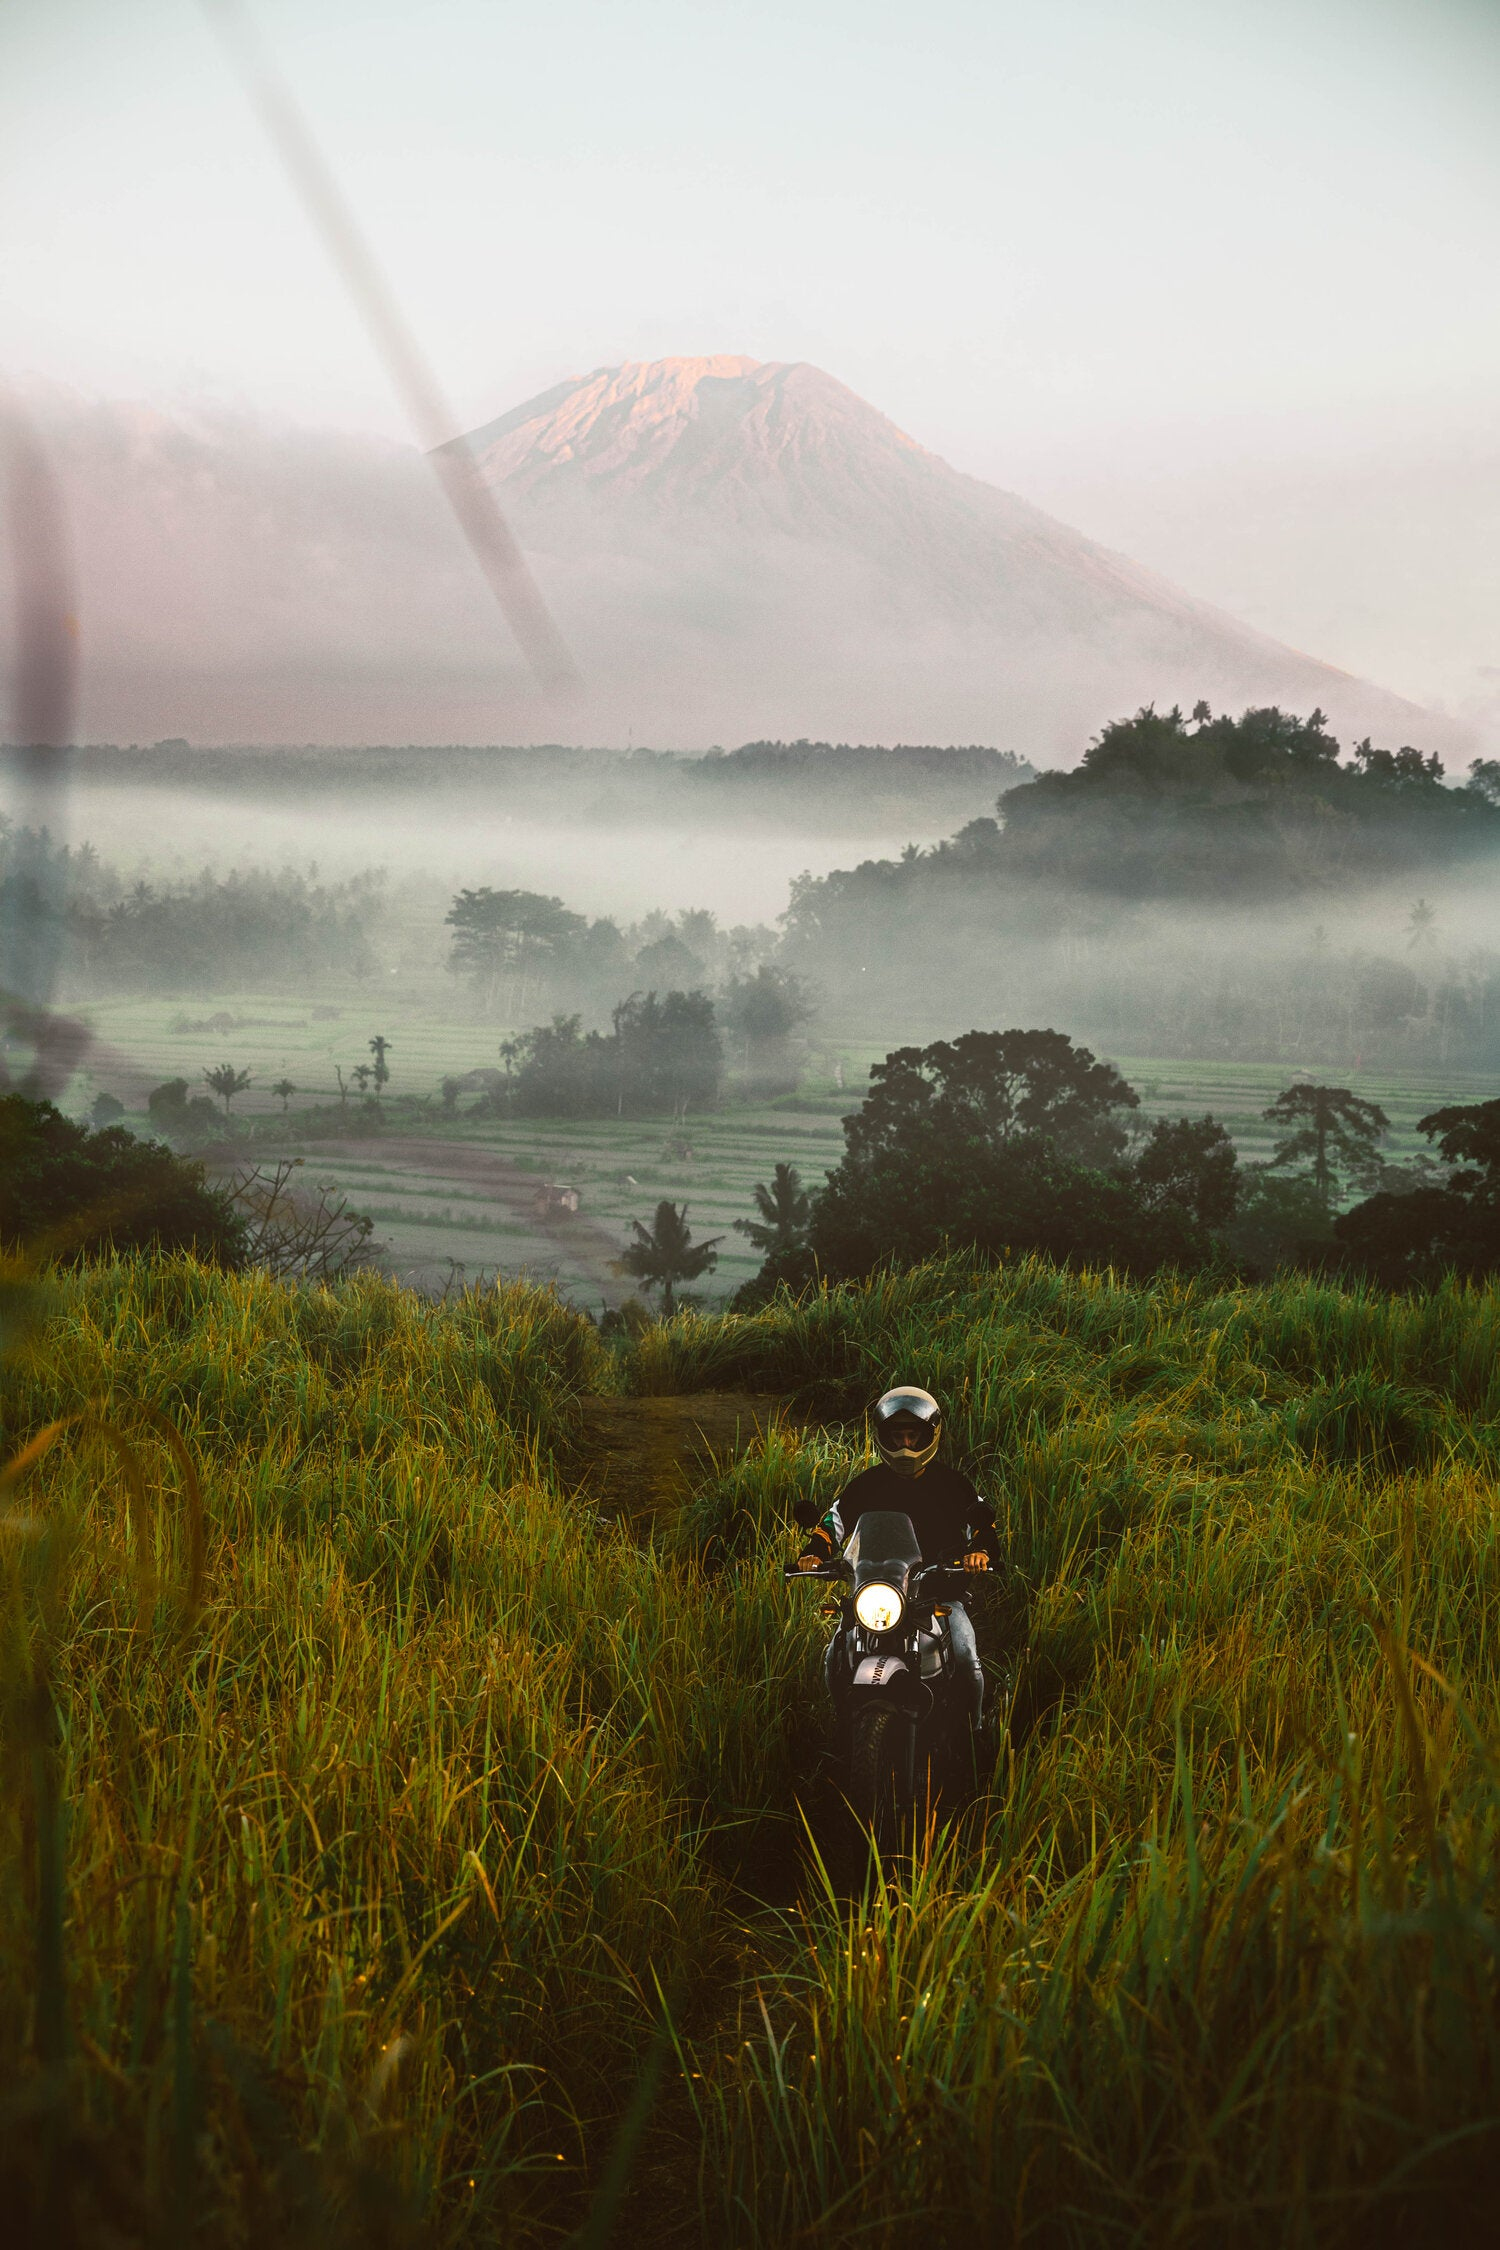 Lost LeBlanc on scooter with Mount Agung in background, Bali